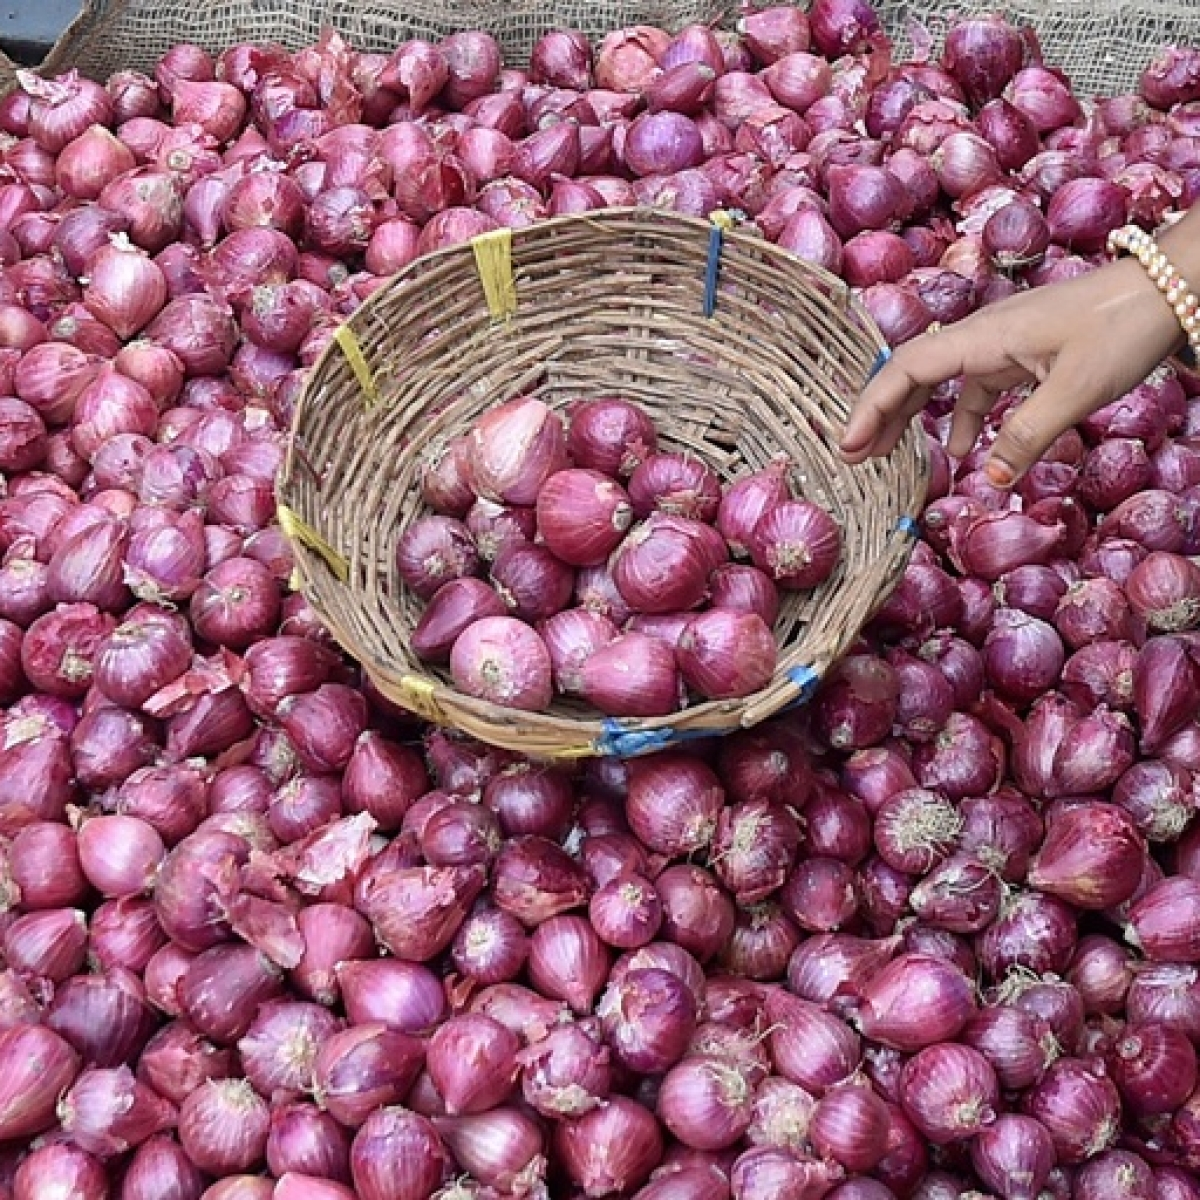 'The Onionomics of India'- why onion prices have skyrocketed